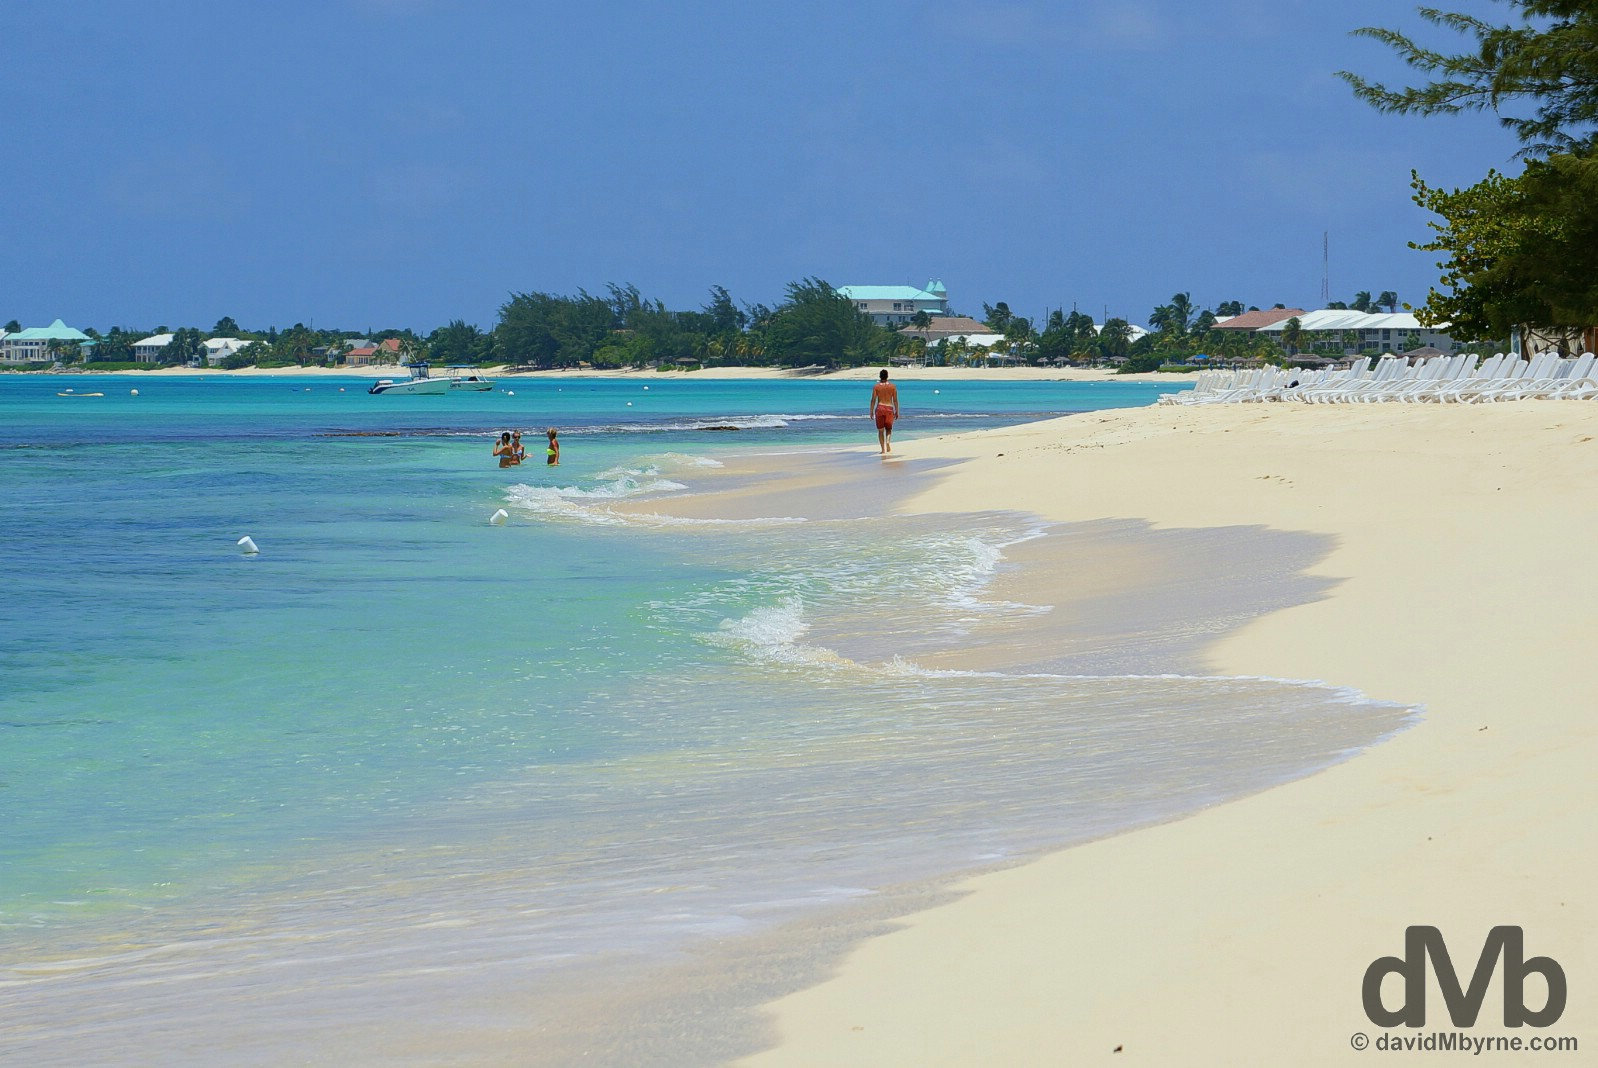 Seven Mile Beach on Grand Cayman, the Cayman Islands, Greater Antilles. May 12, 2015.